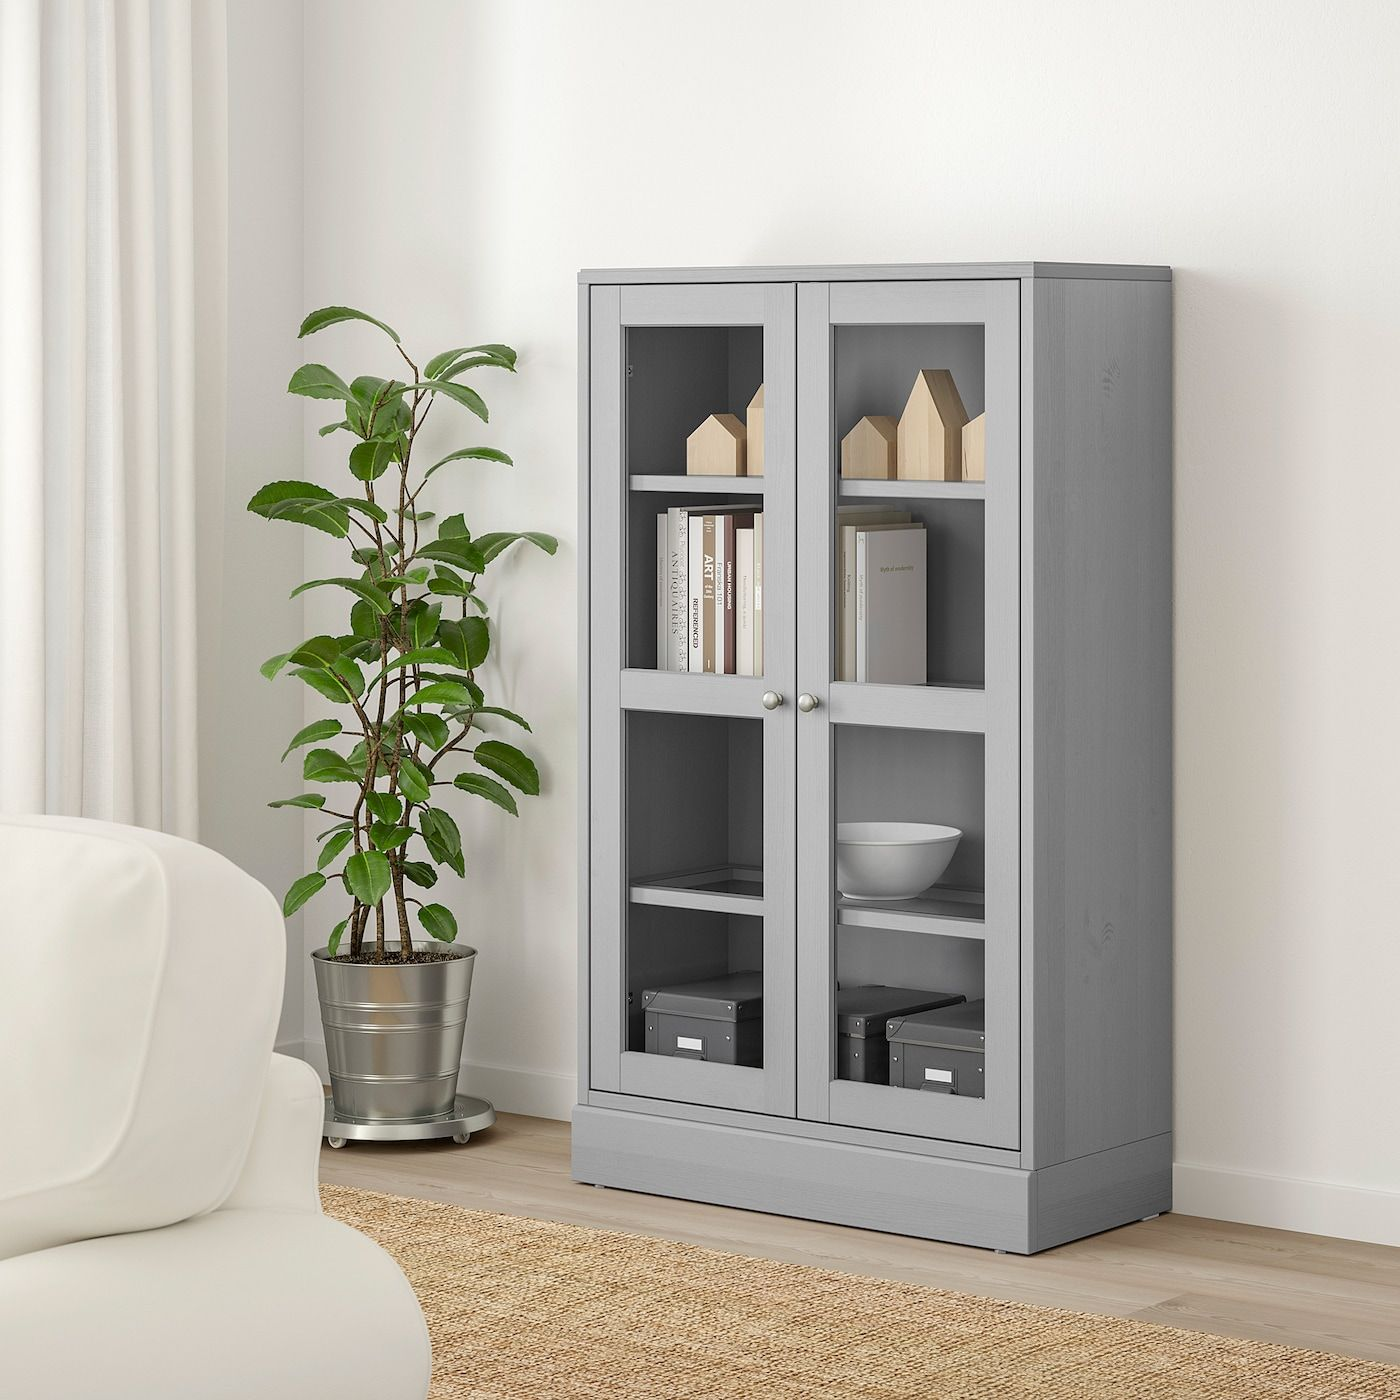 HAVSTA Glassdoor with base gray, clear glass